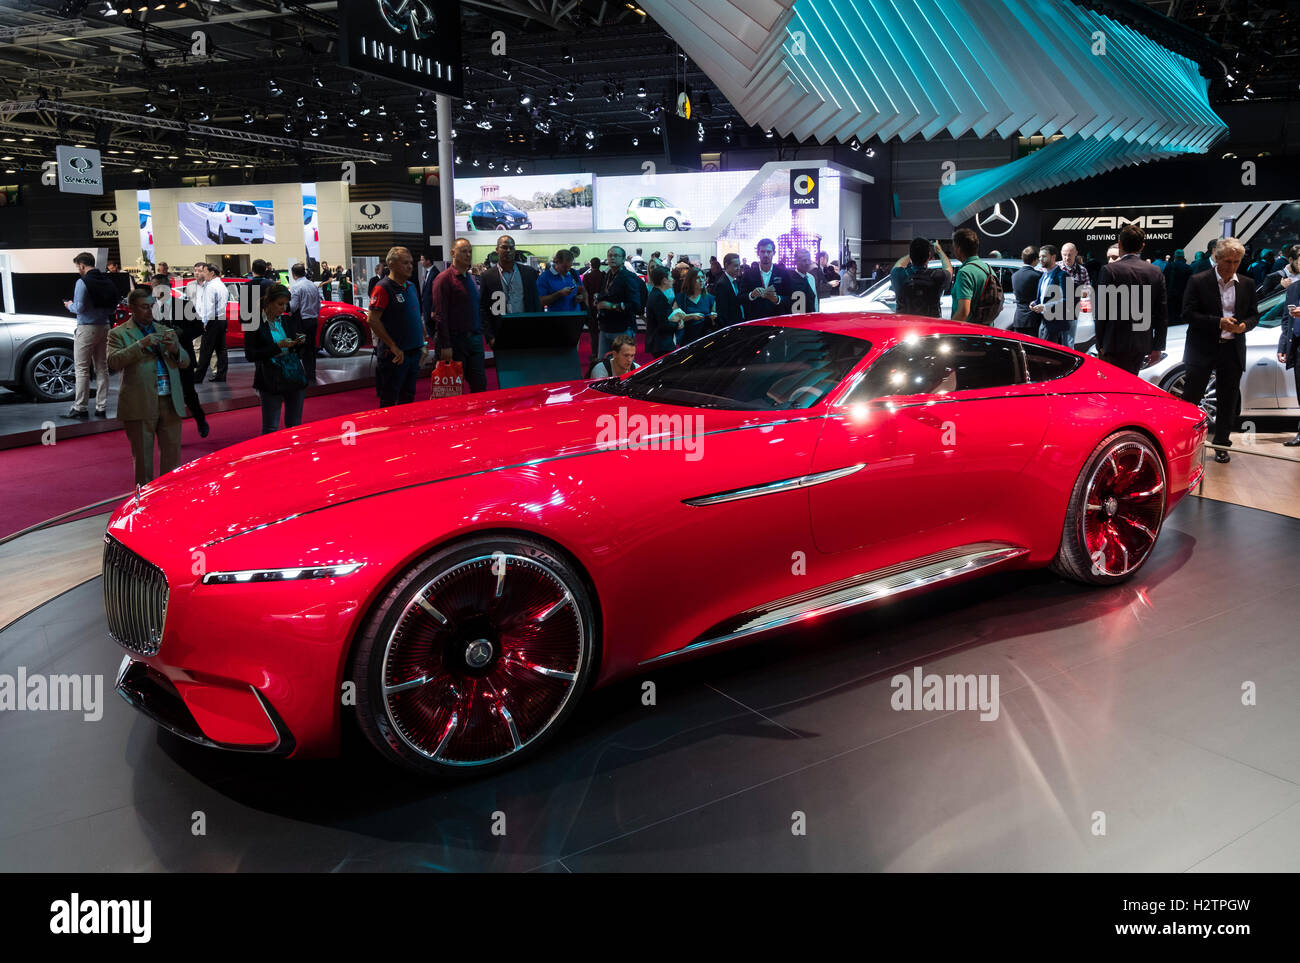 https://c8.alamy.com/comp/H2TPGW/vision-mercedes-maybach-6-concept-electric-all-wheel-drive-luxury-H2TPGW.jpg